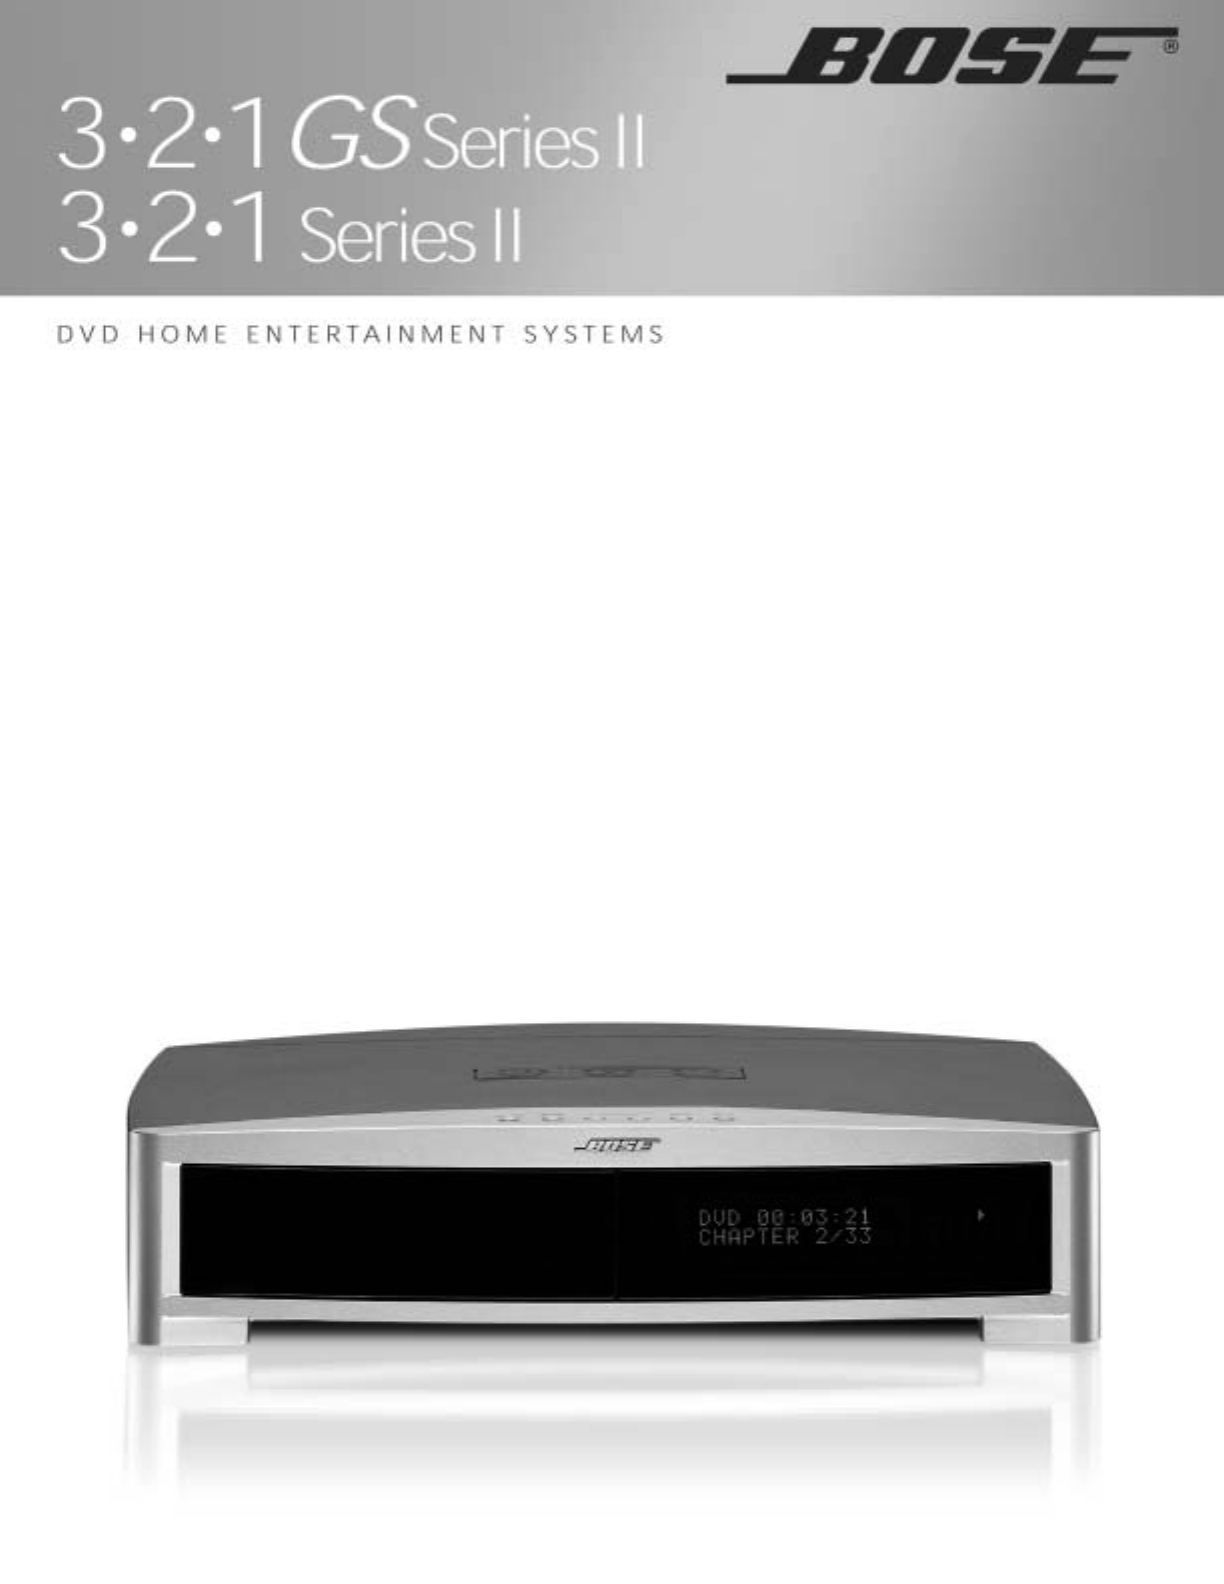 bose dvd player 3 2 1 gs series ii 3 2 1 series ii user guide rh tv manualsonline com Bose Home Theater System Bose DVD Home Entertainment Systems